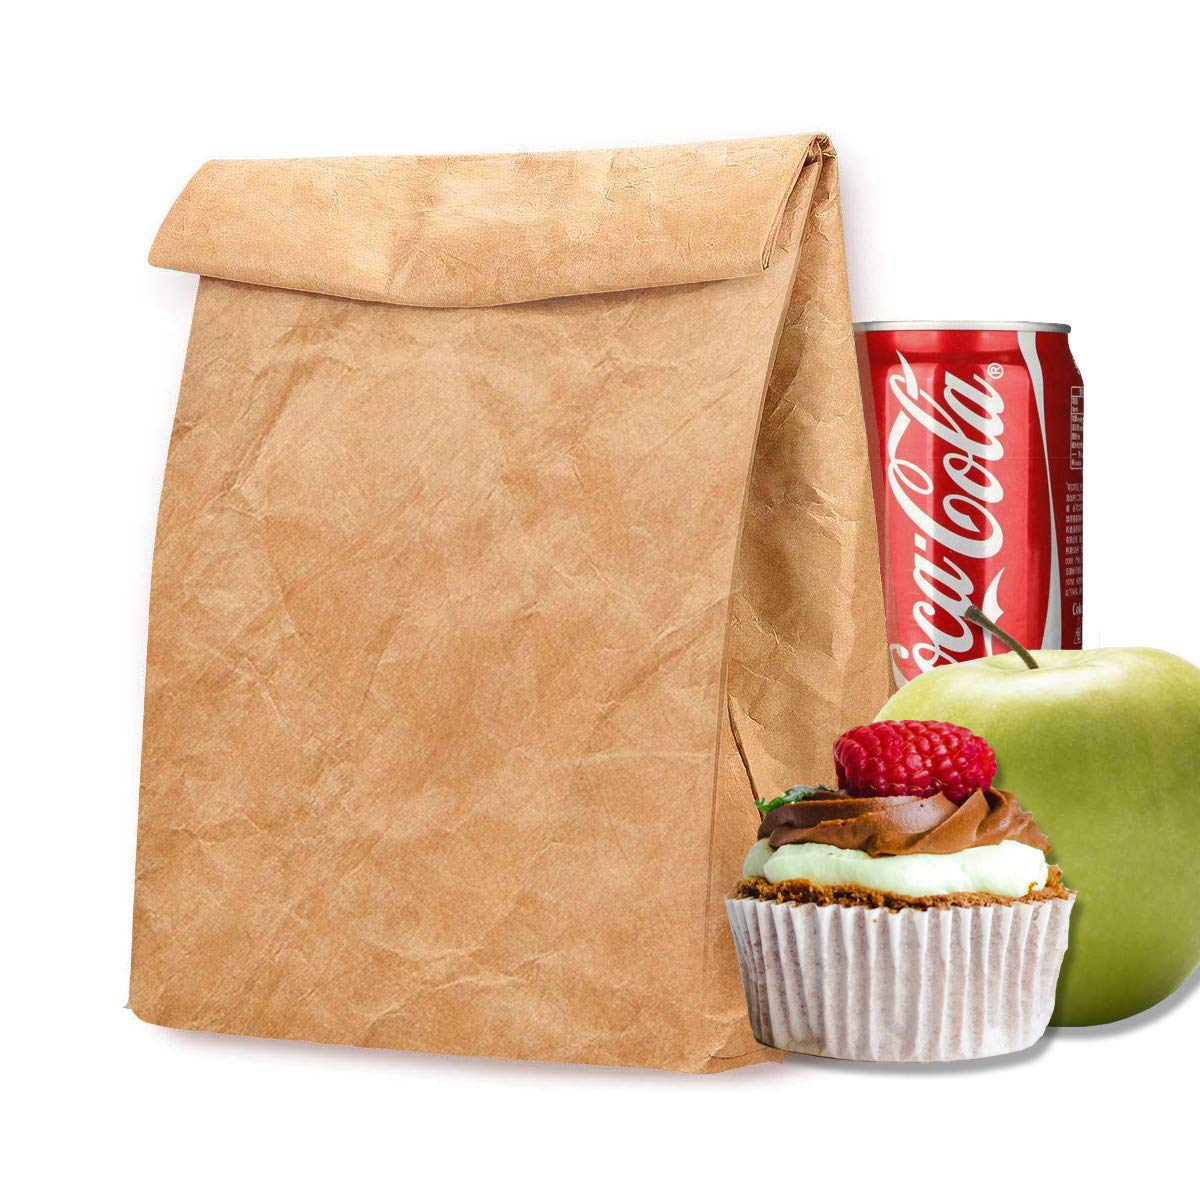 Eco Lunch Bag, Tyvek Lunch Box for Women Man, Reusable Insulated Paper Snack Bags for Work Picnic School